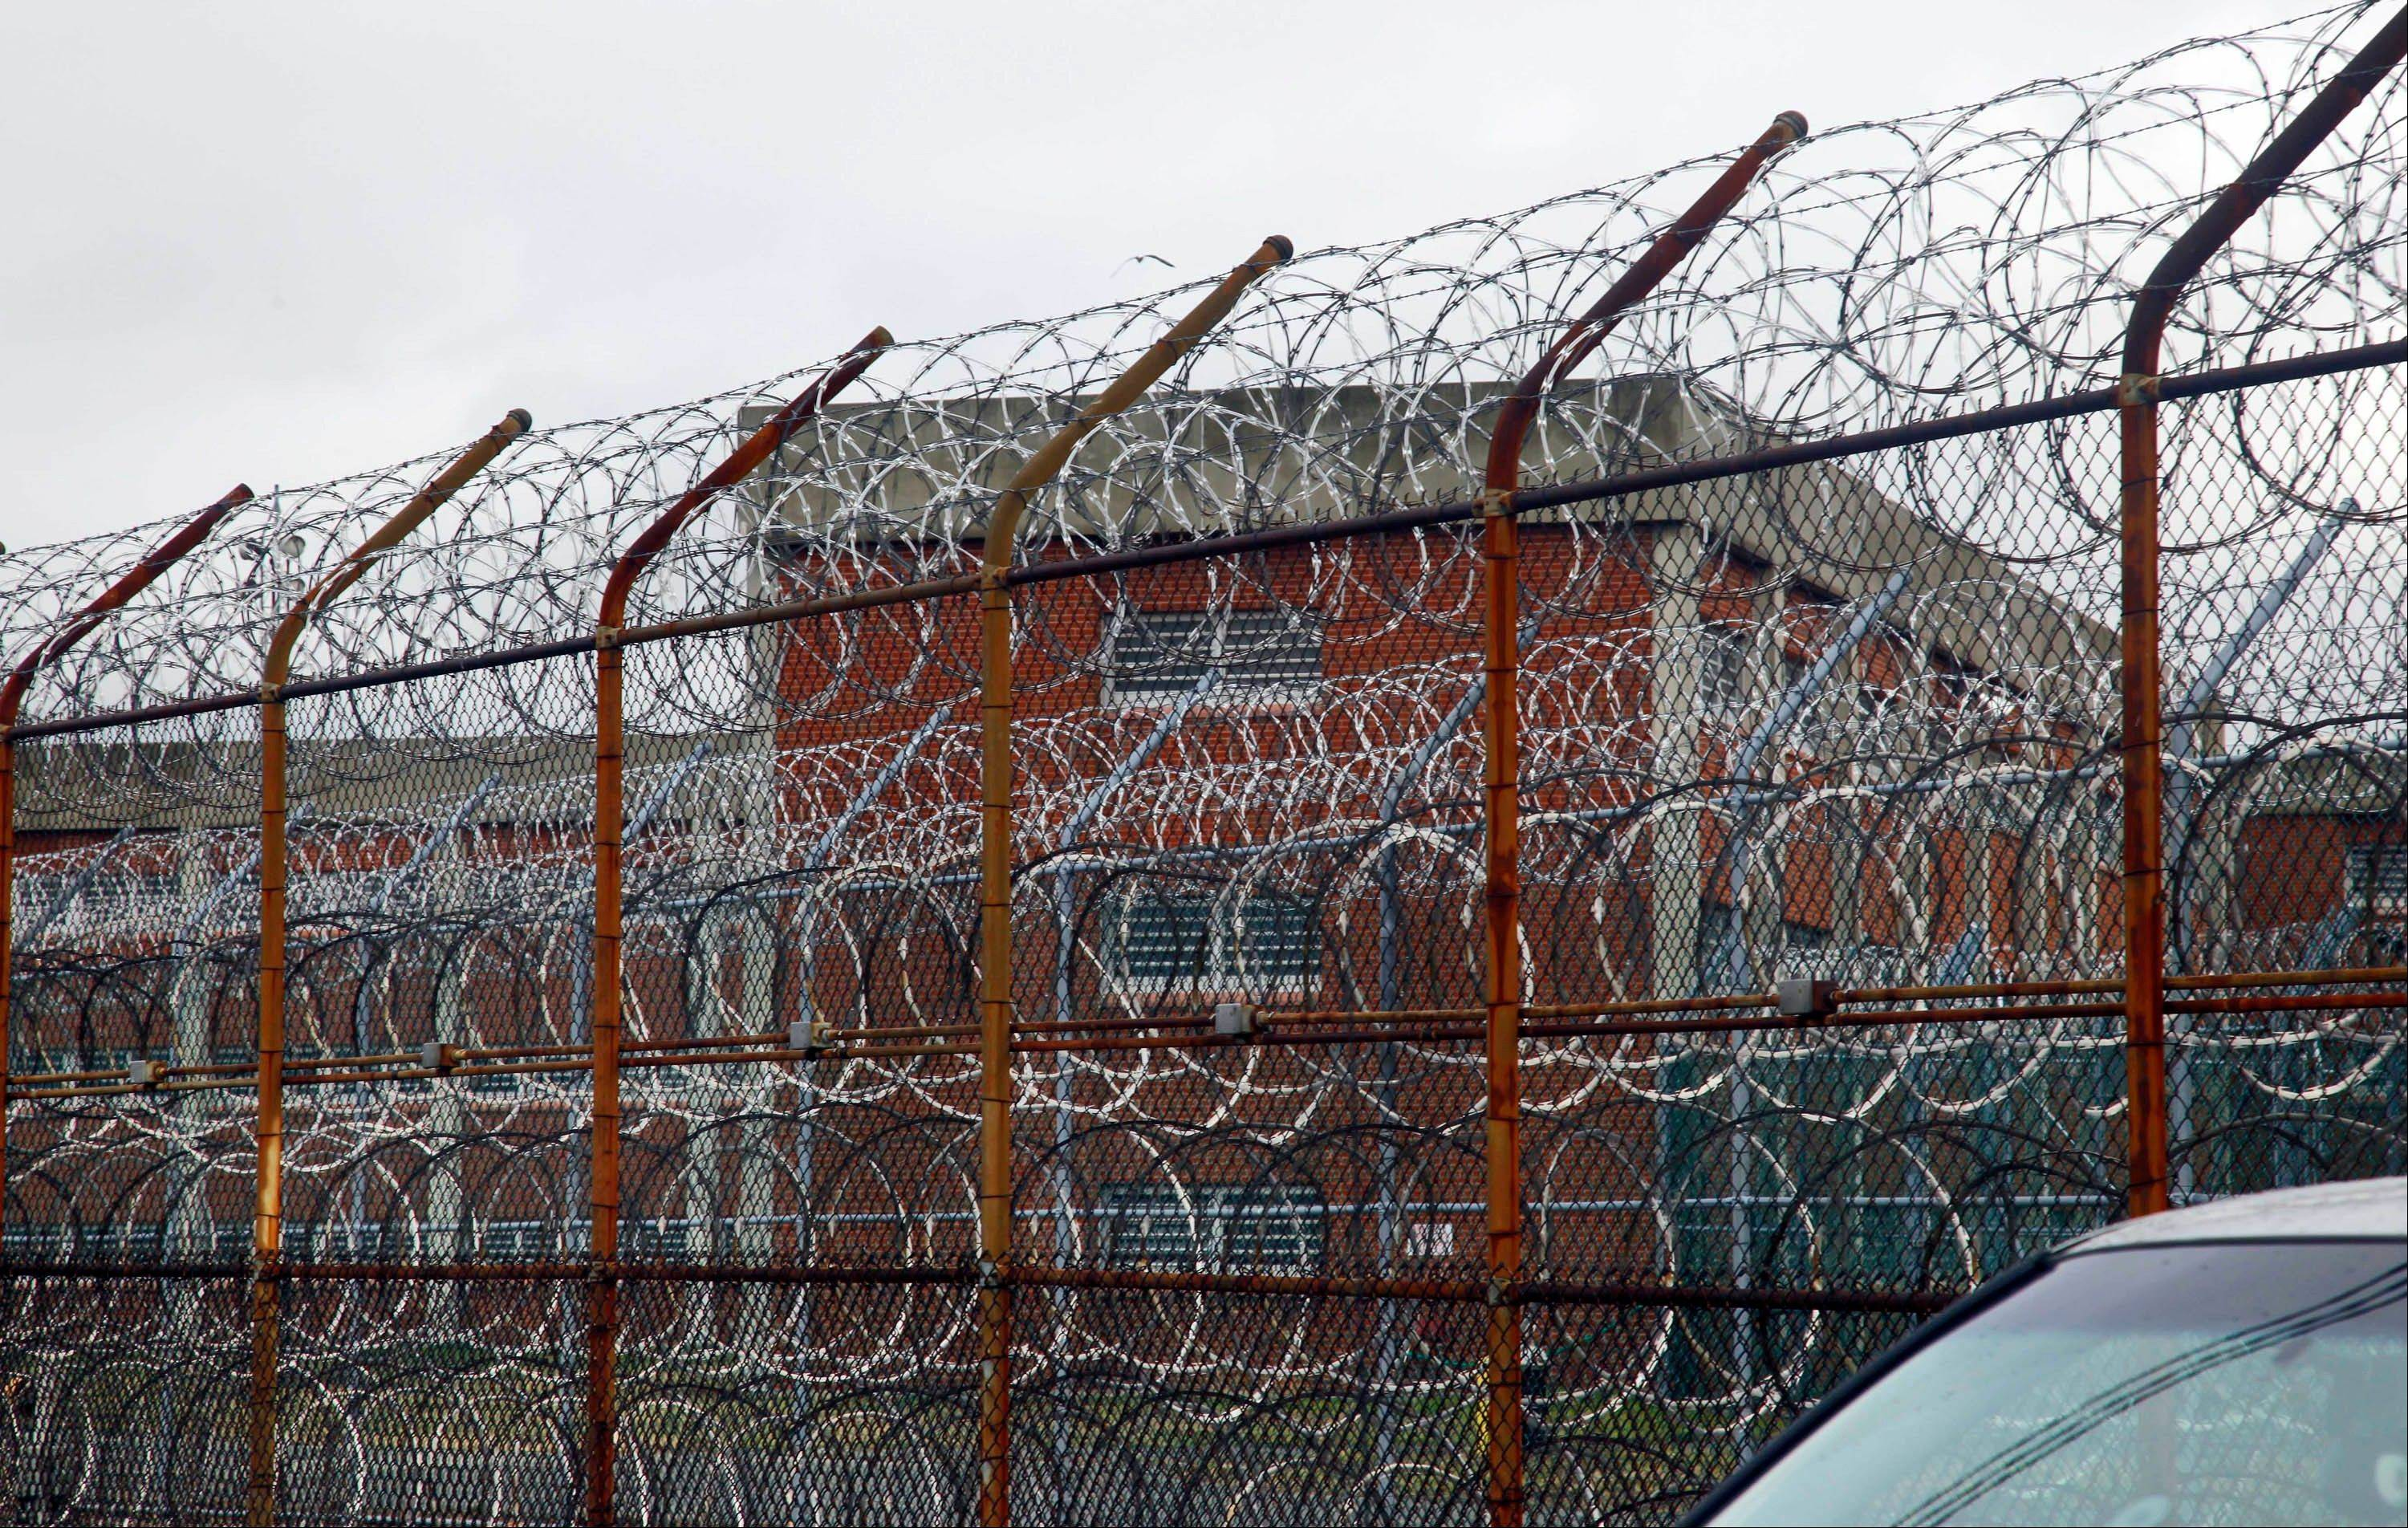 Associated Press/March 16, 2011 A barbed wire fence outside inmate housing on New York�s Rikers Island correctional facility in New York.